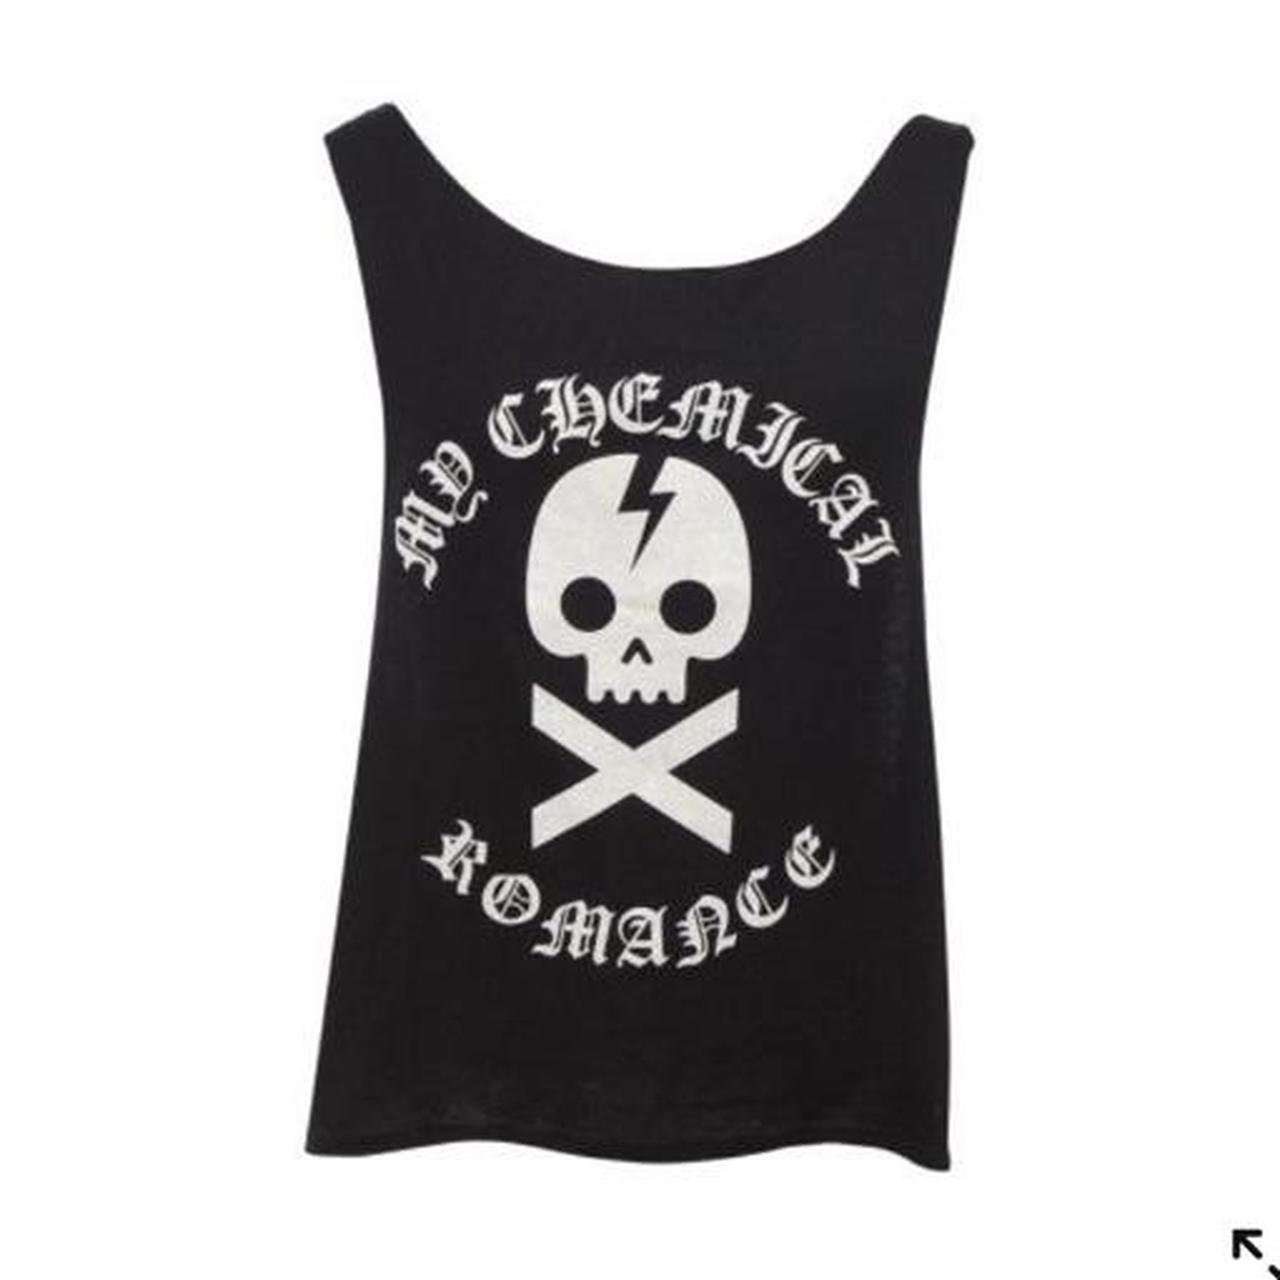 Product Image 1 - INTEREST CHECK   My chemical romance